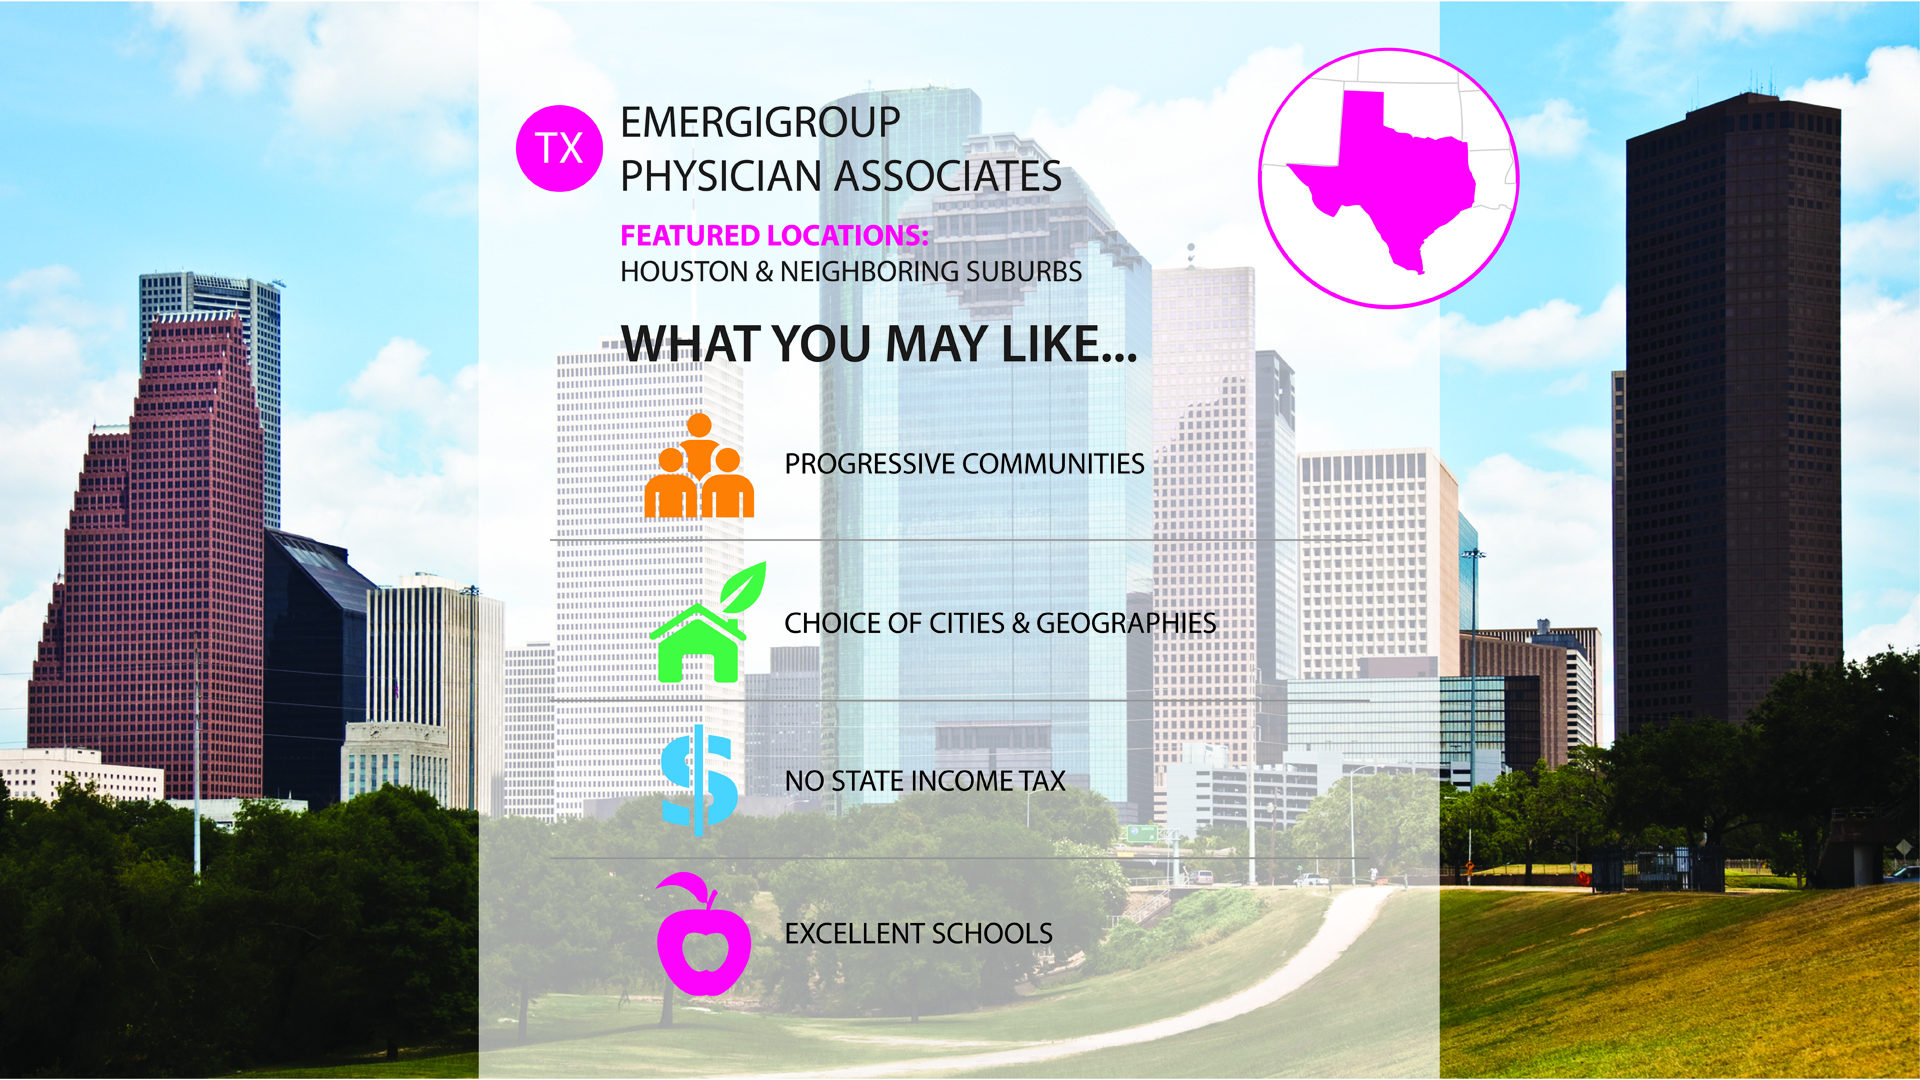 Emergigroup Physician Associates job in houston